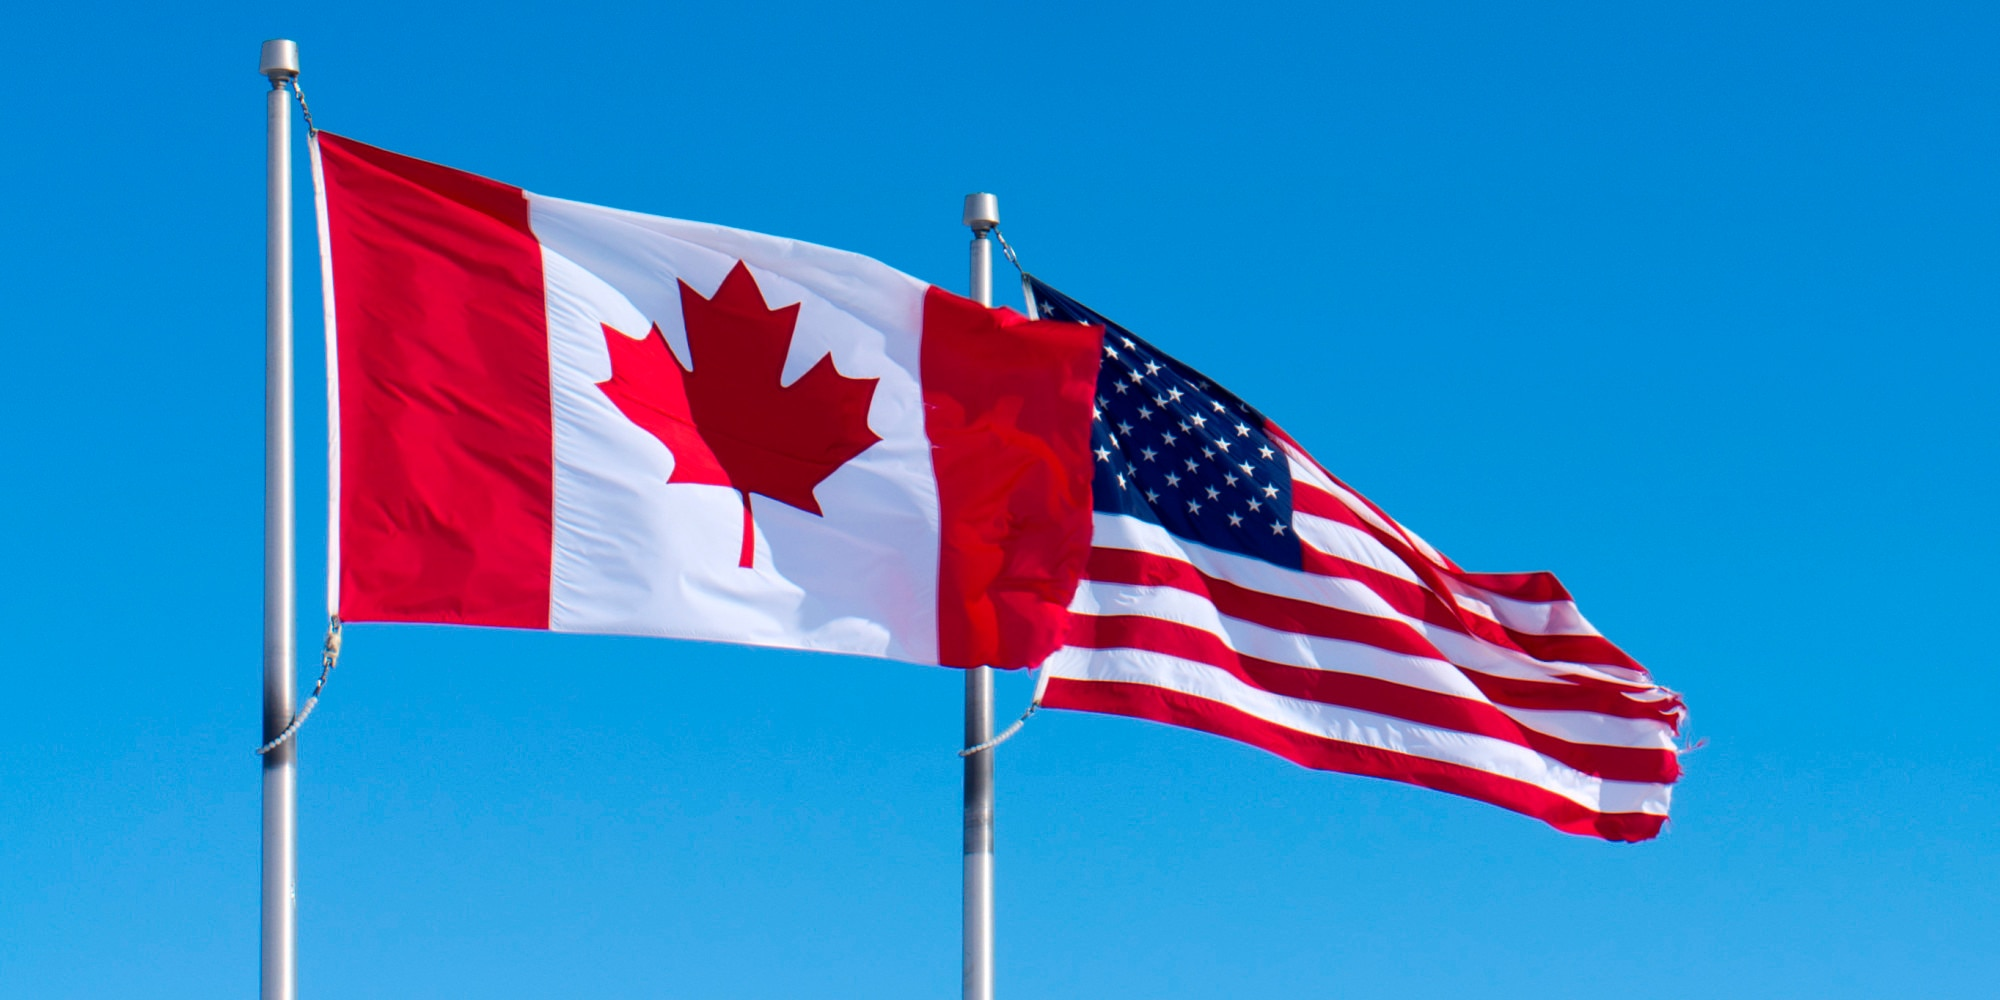 The United States and Canada: The Strength of Partnership ...